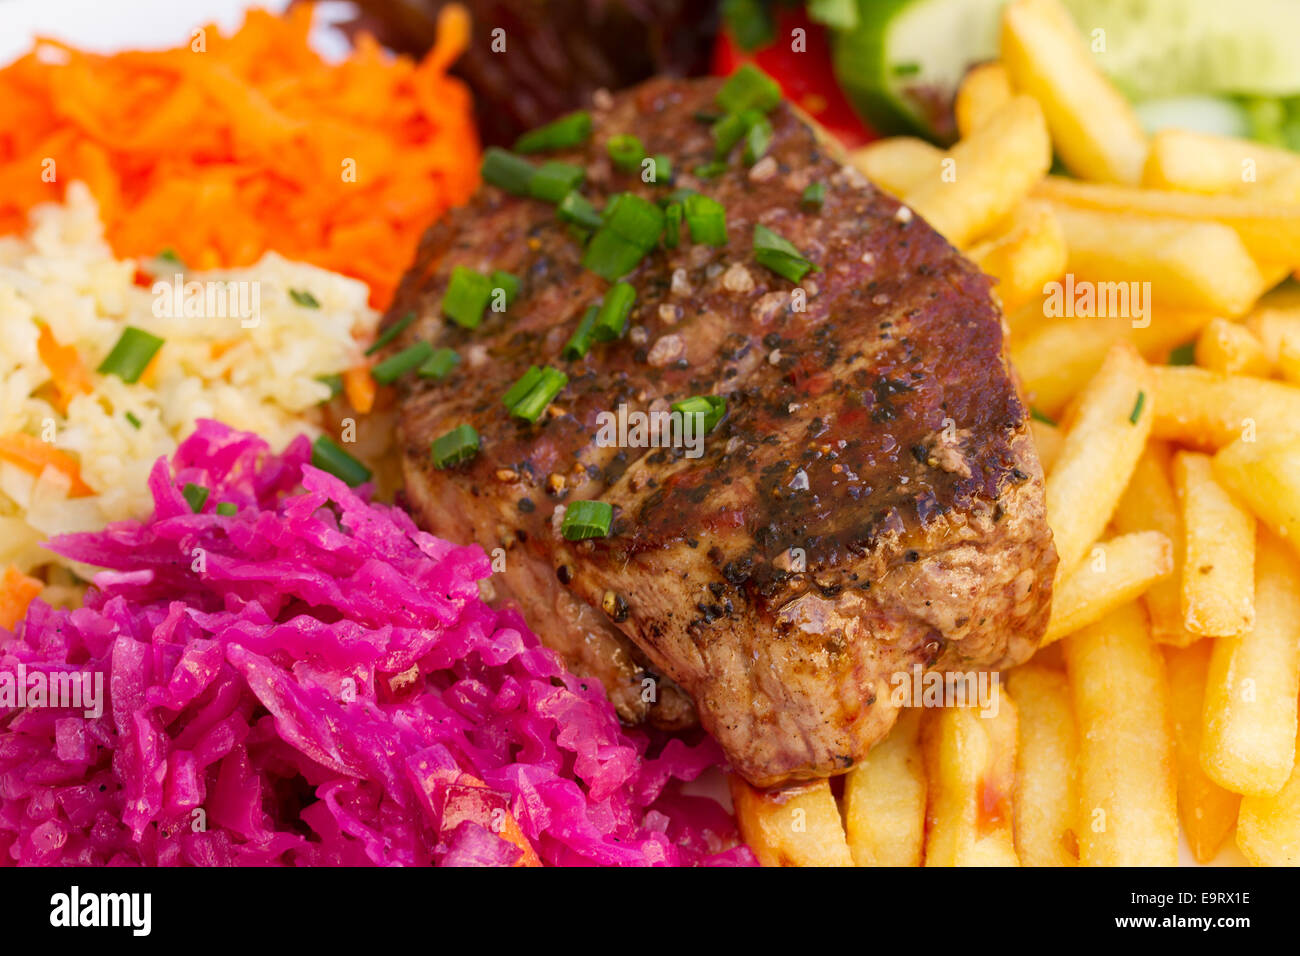 meat steak close up - Stock Image